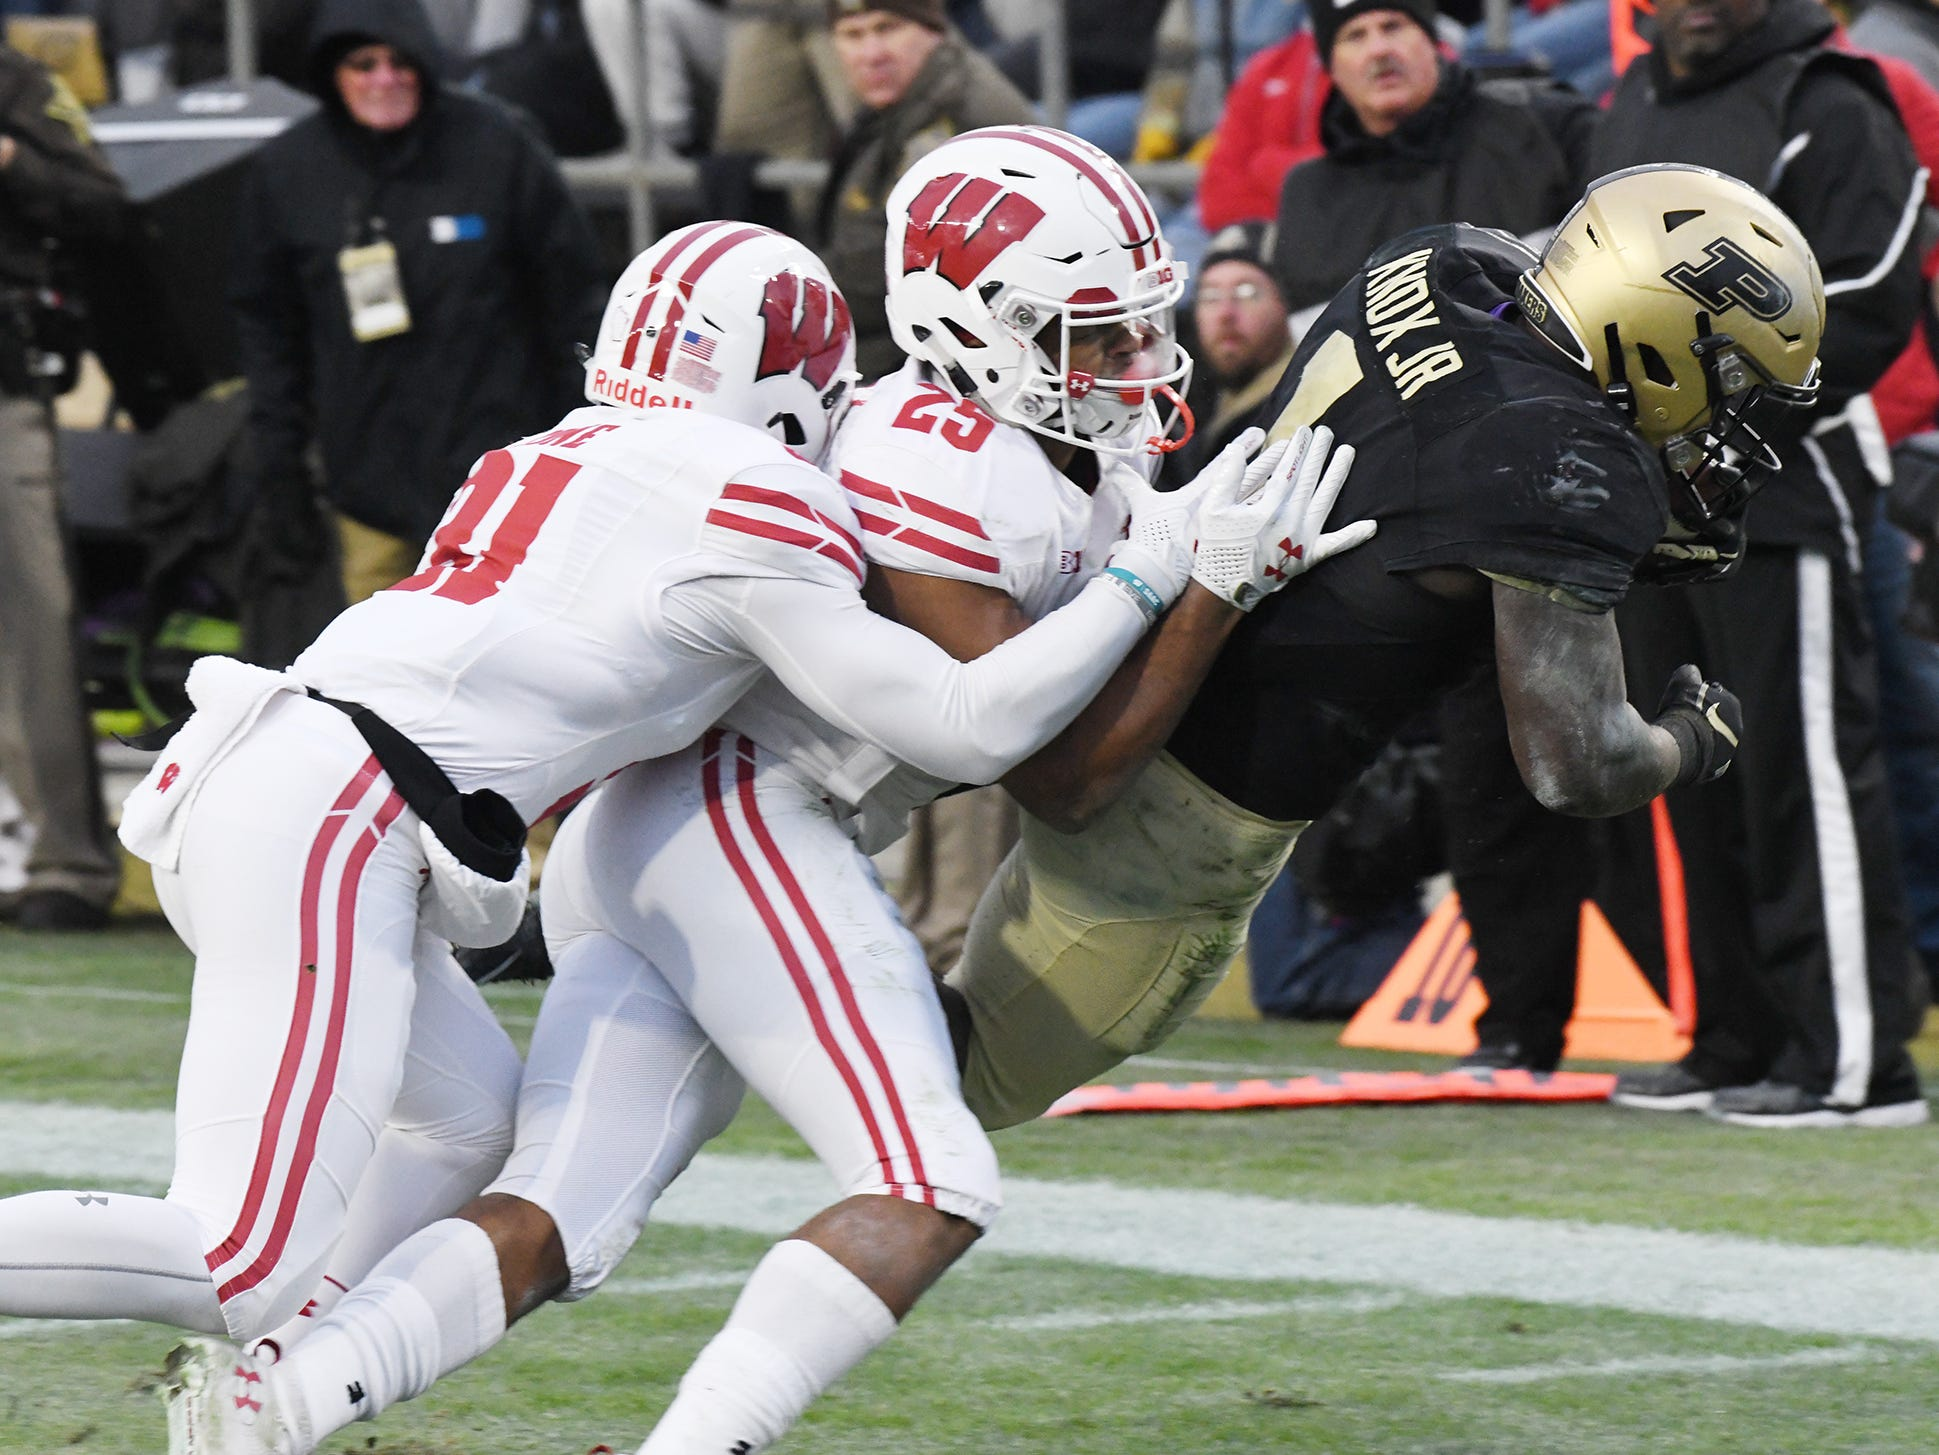 D. J. Knox drags two Wisconsin defenders as he dives across the goal line on a first half touchdown reception Saturday, November 17, 2018, at Ross-Ade Stadium.